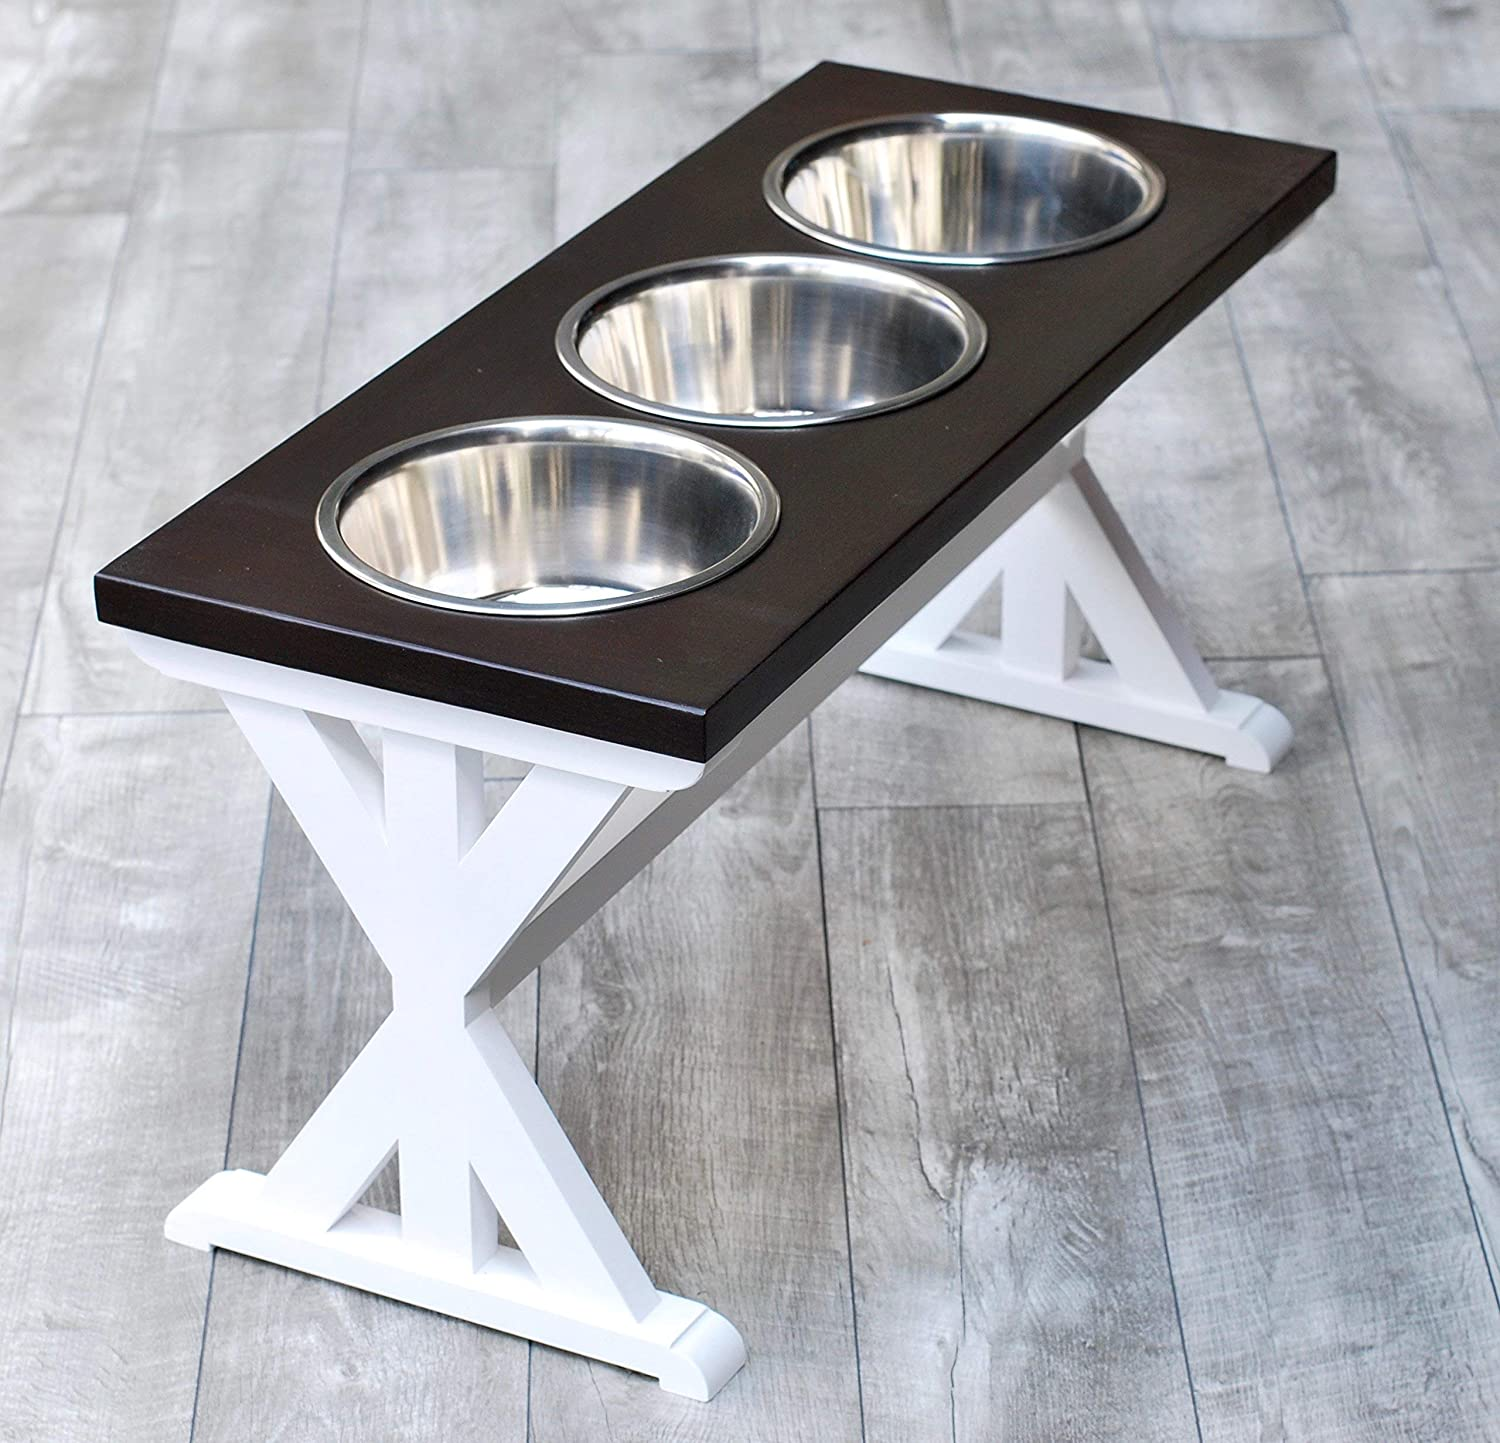 X-Large 3 Bowl Trestle Farmhouse Dog Bowl Stand